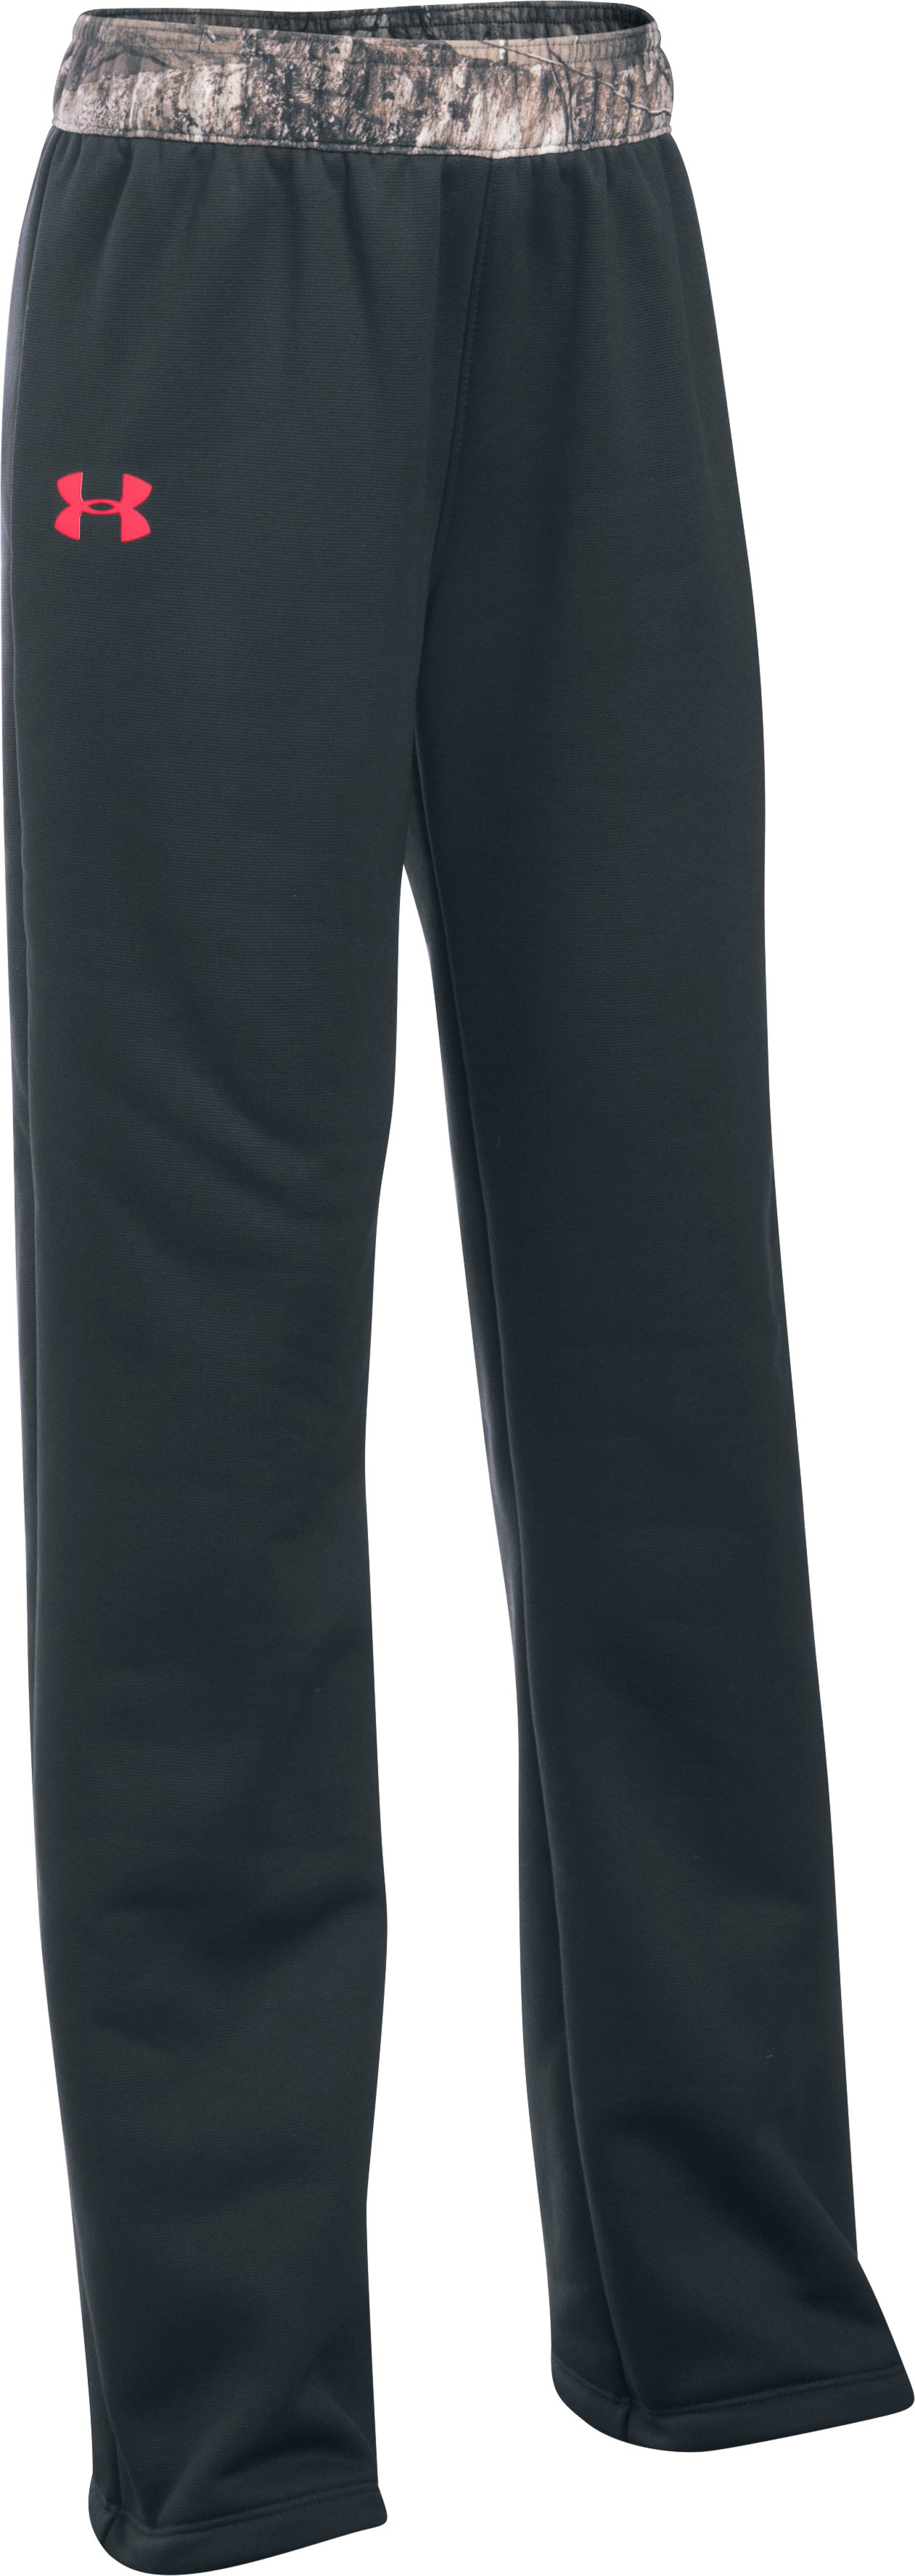 Girls' UA Storm Caliber Pants, ANTHRACITE, undefined